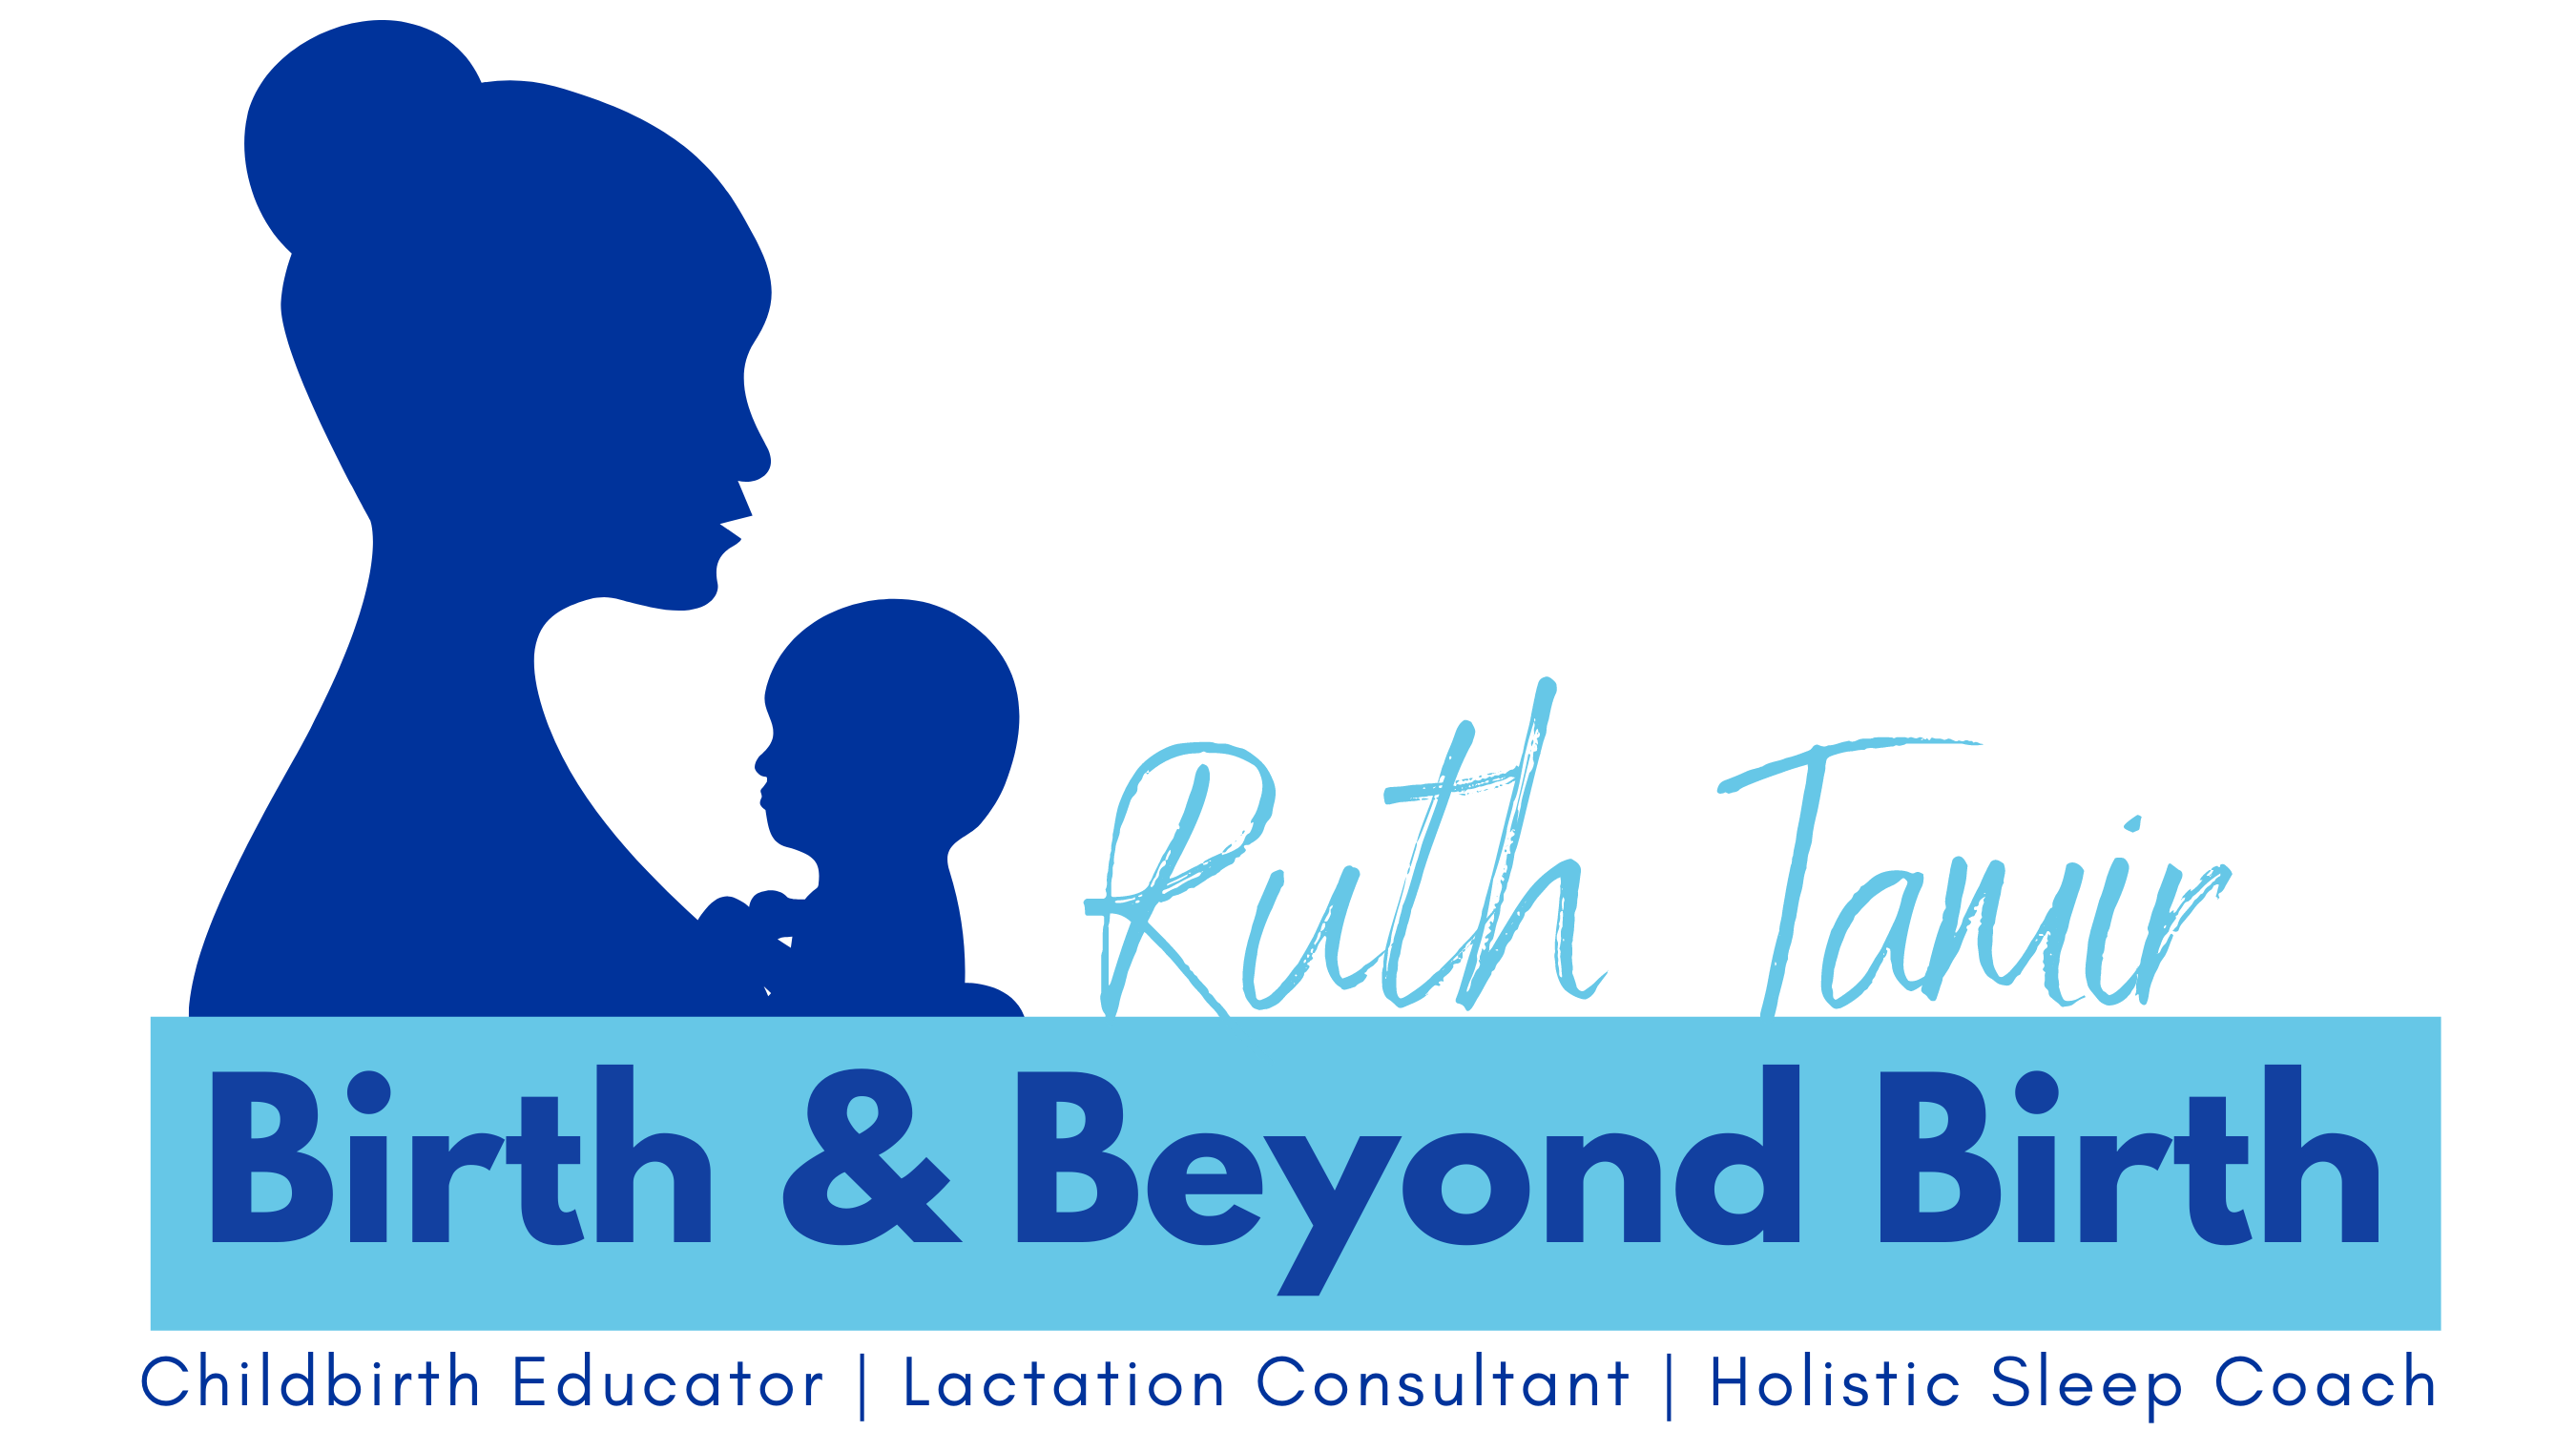 Birth & Beyond Birth